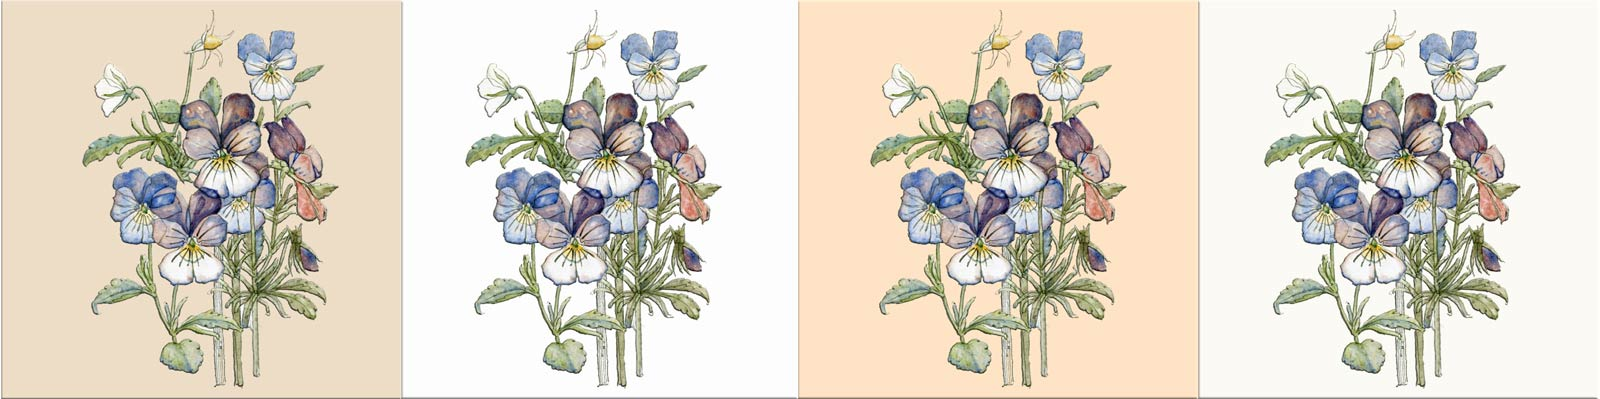 Charles Rennie Mackintosh flowers shown on bisque, Navajo, parchment, and wheat backgrounds.